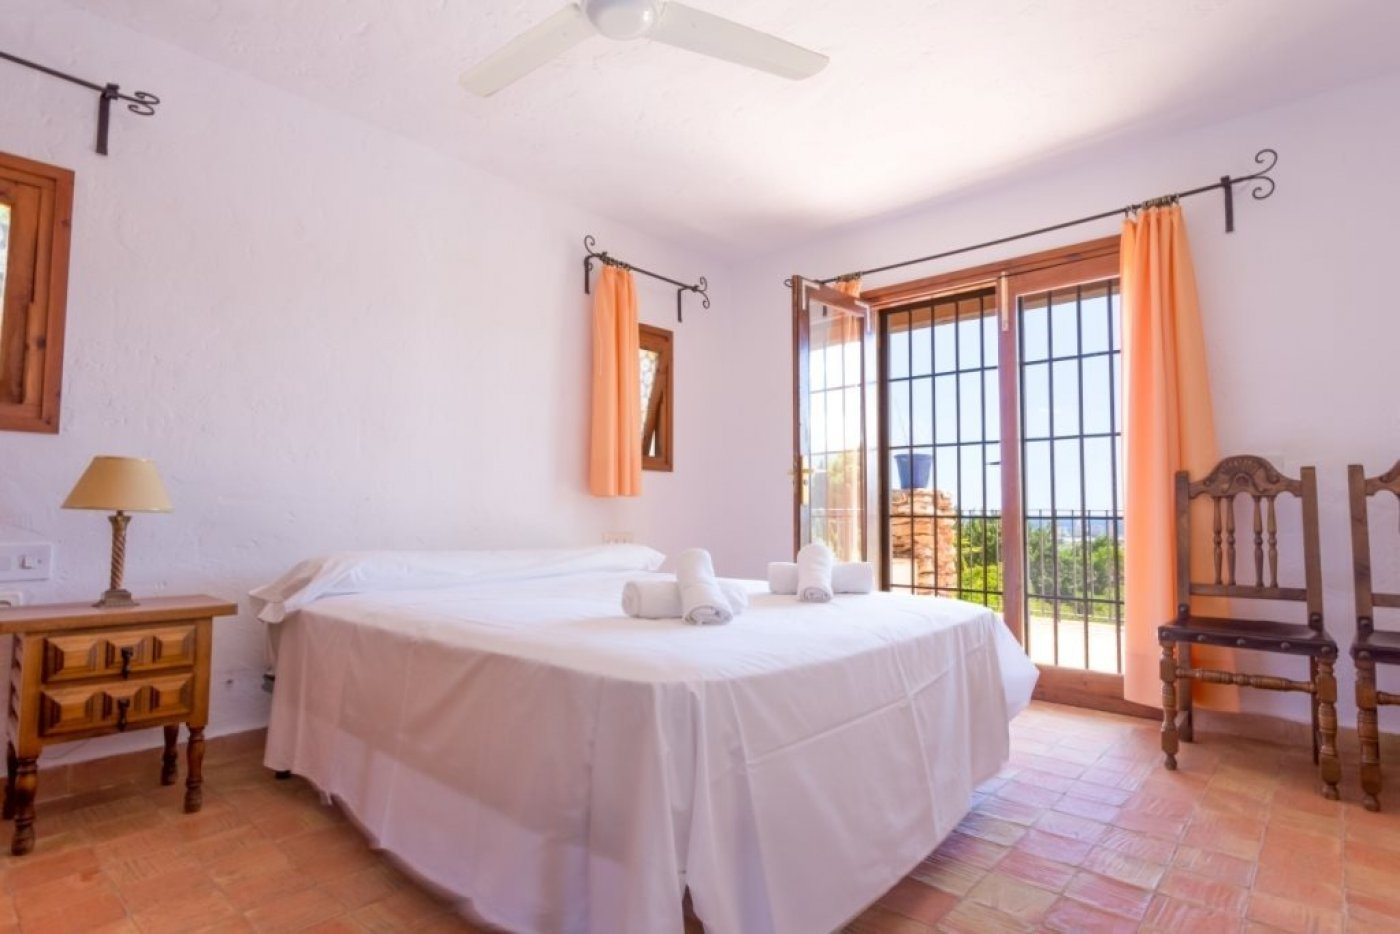 Villa - Enter To Live - Carrio - Calpe